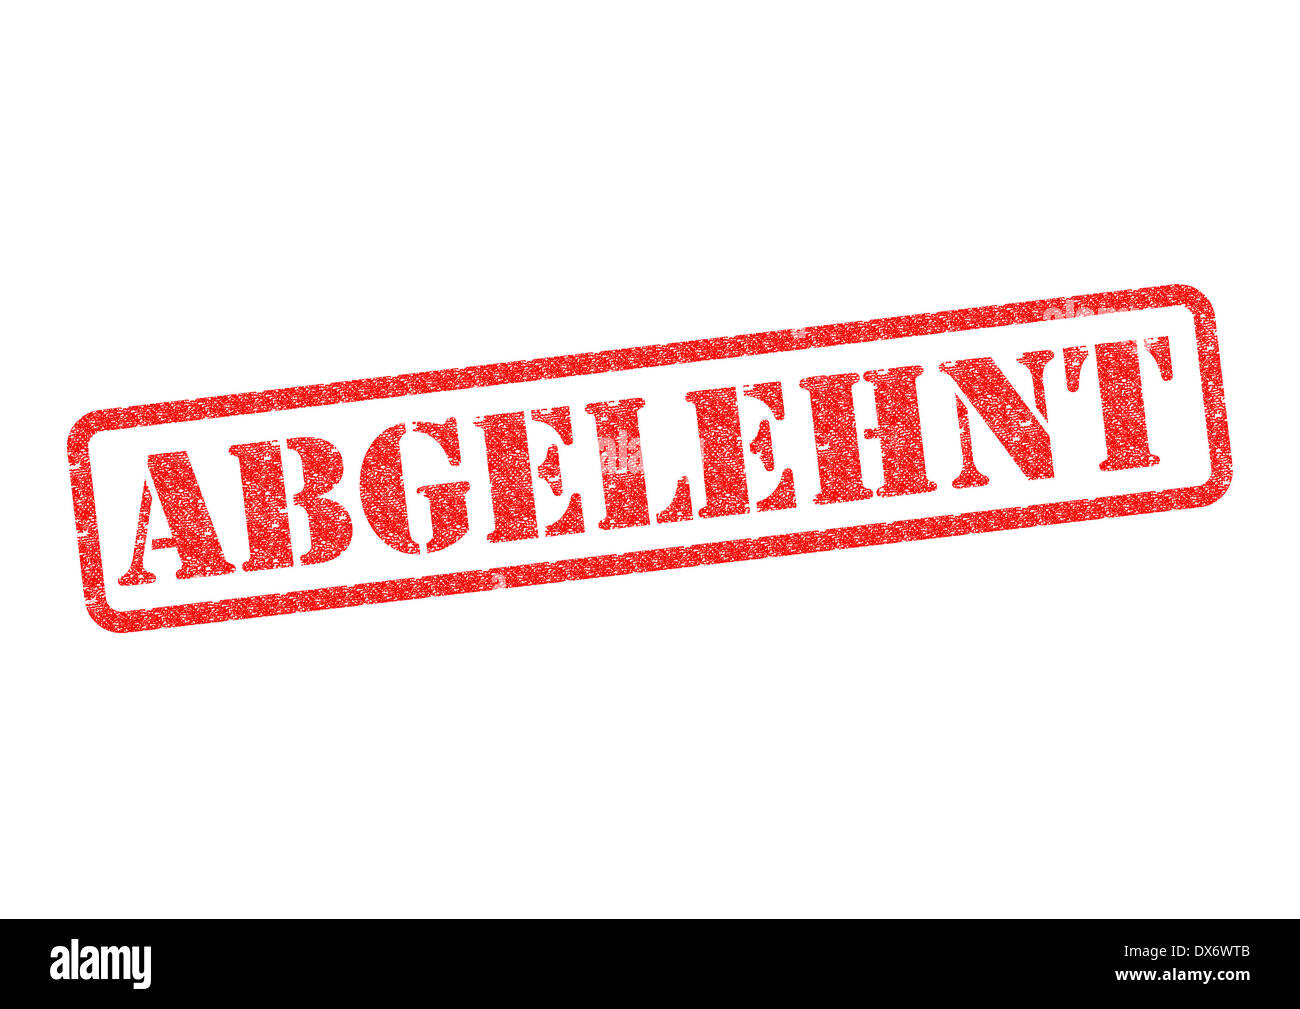 Abgelehnt (Rejected) Stempel/Stamp over a white background. - Stock Image